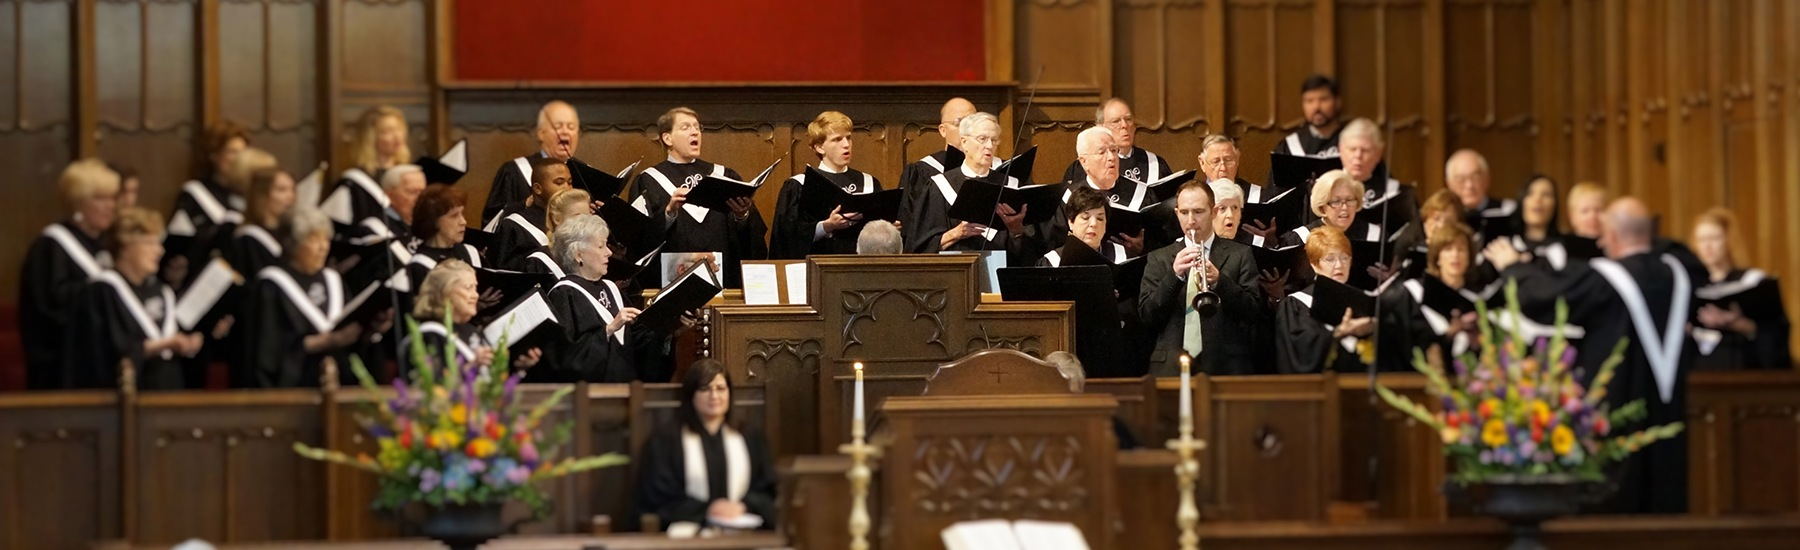 Music : Chancel Choir